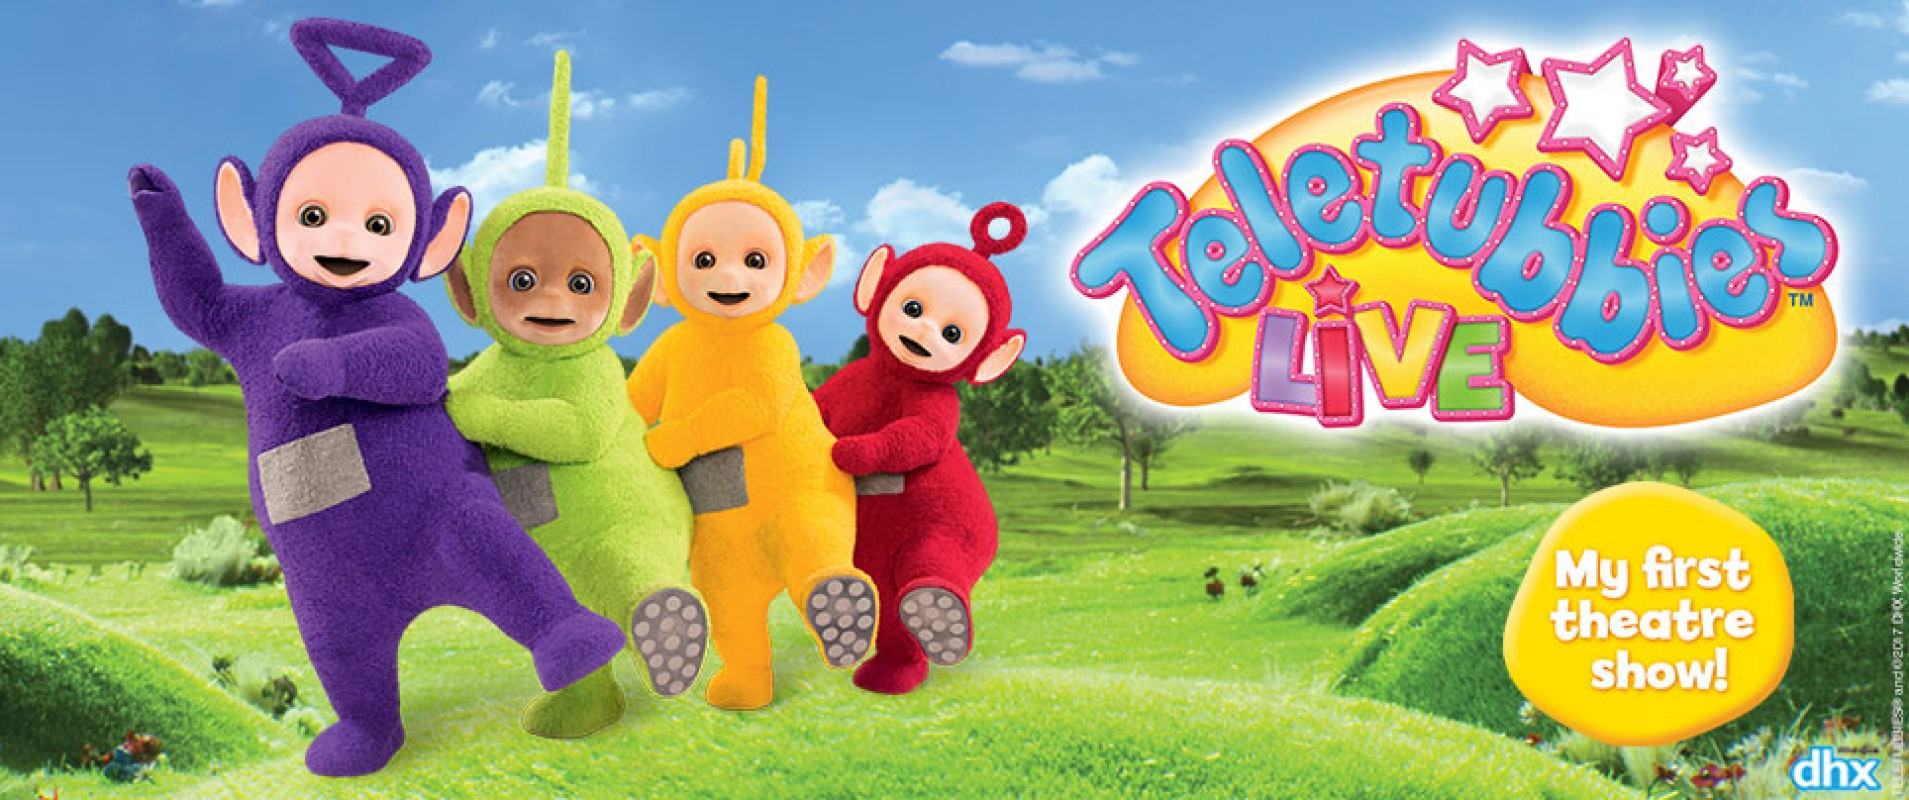 Teletubbies Live UK